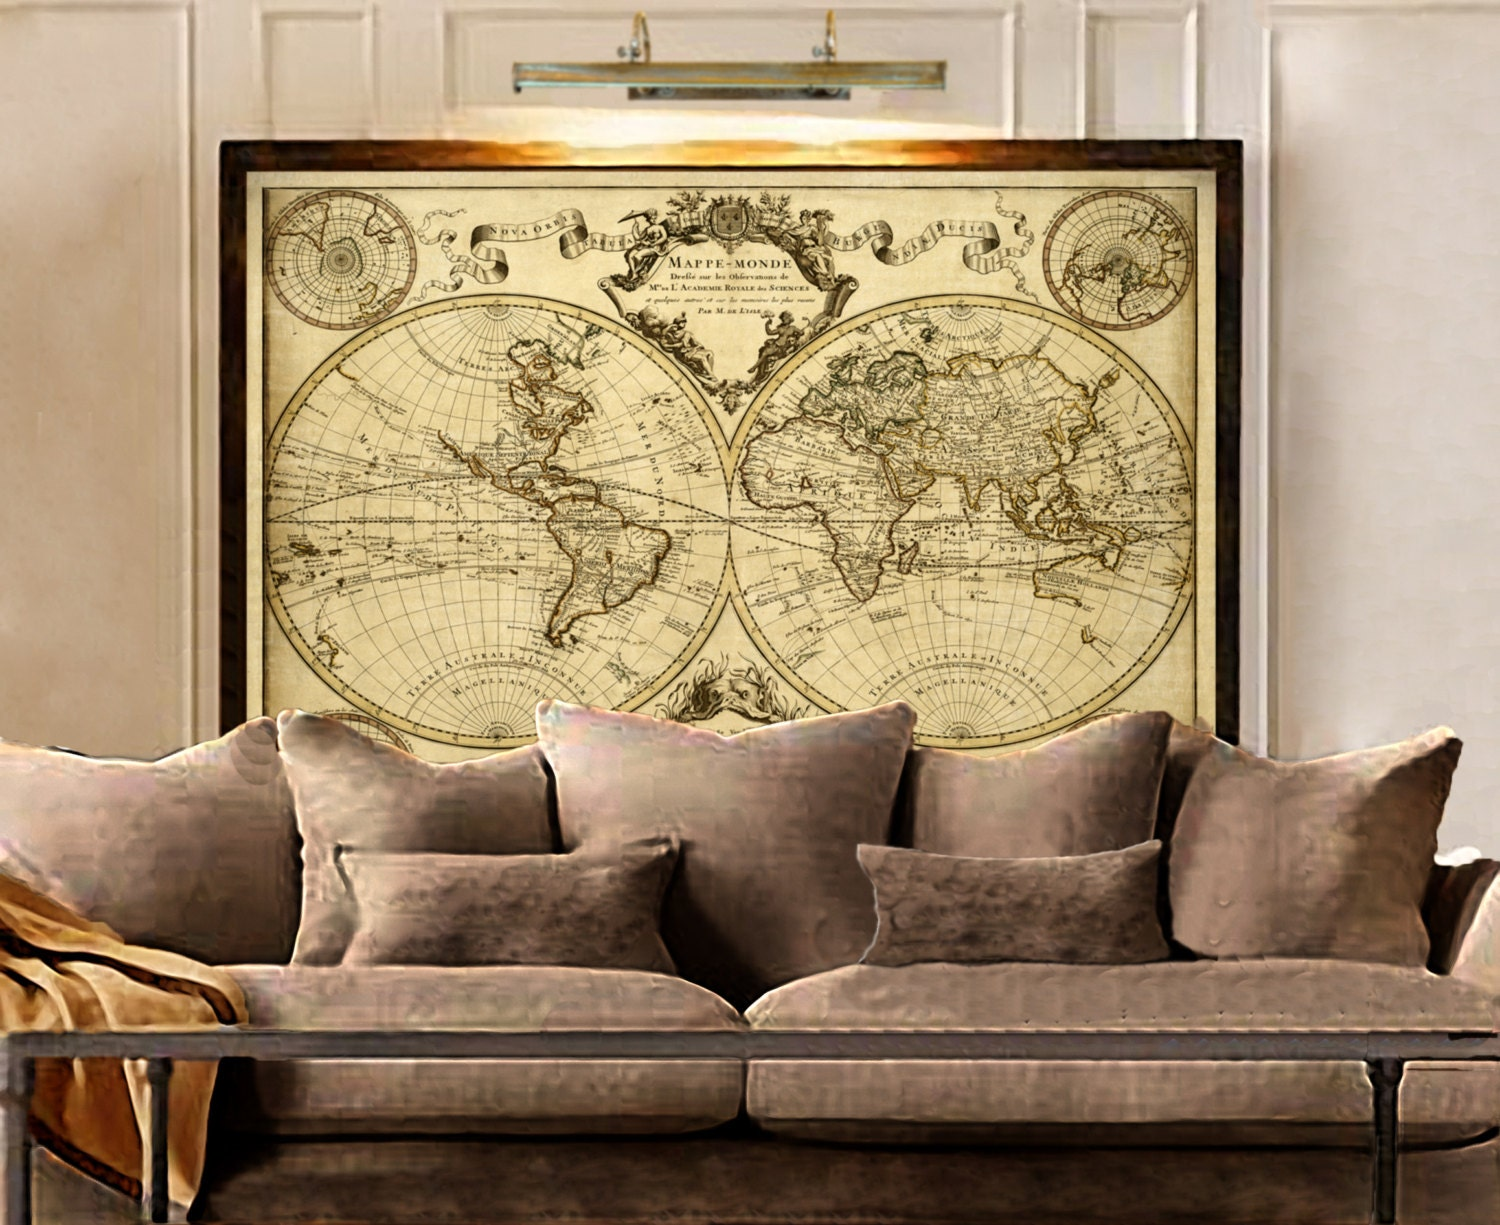 L 39 isle 39 s 1720 old world map historic map antique style for Antique home decorations